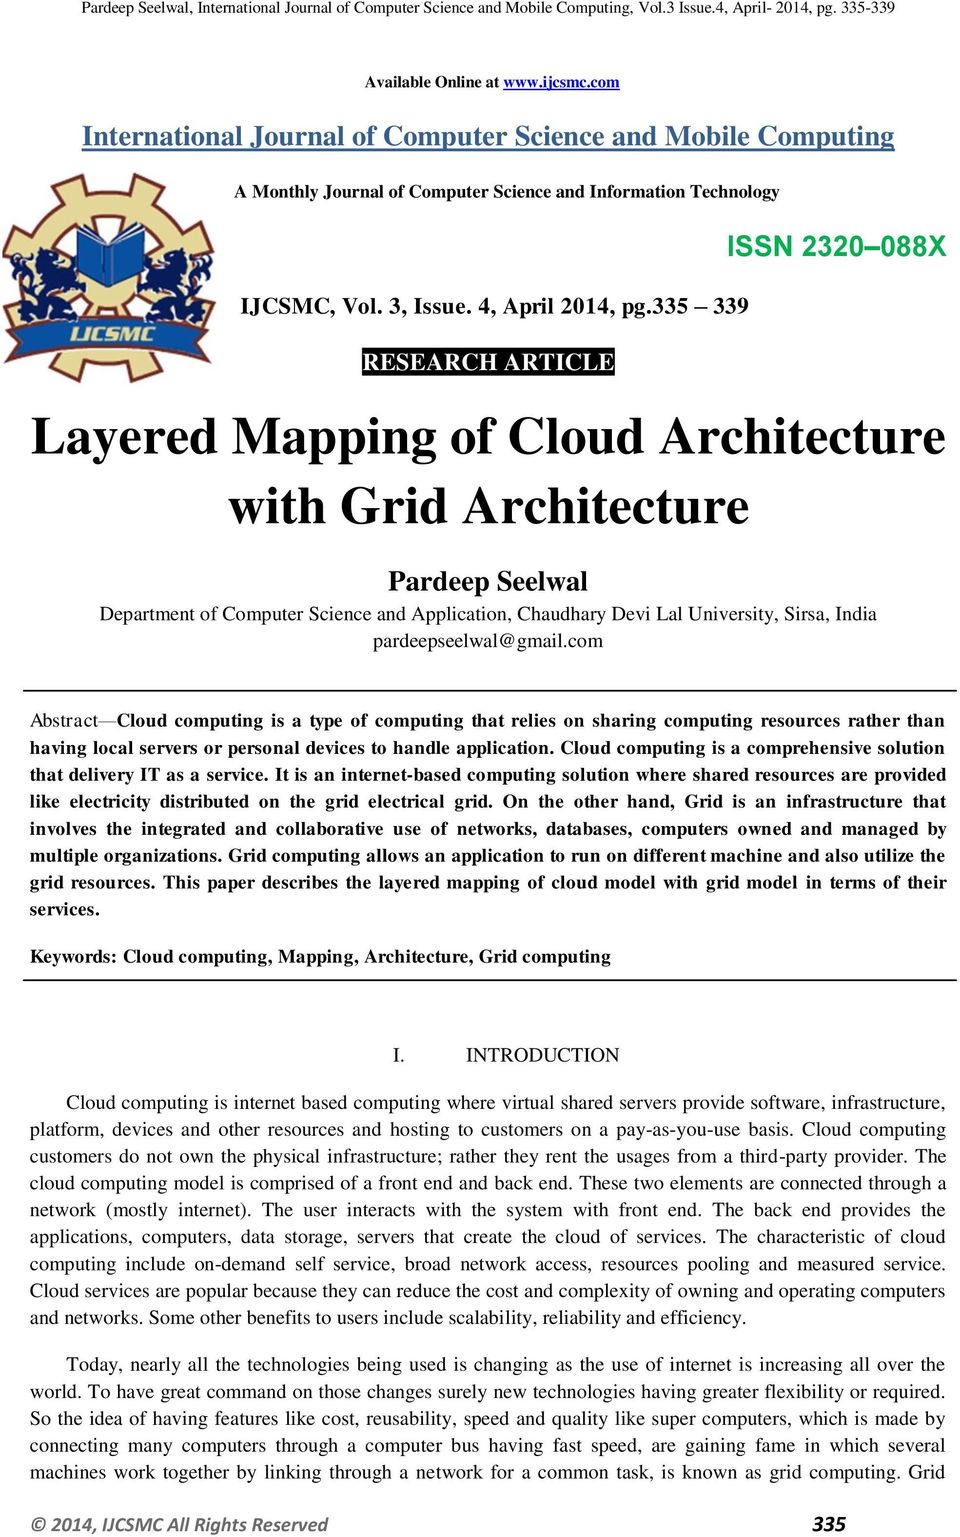 335 339 RESEARCH ARTICLE ISSN 2320 088X Layered Mapping of Cloud Architecture with Grid Architecture Pardeep Seelwal Department of Computer Science and, Chaudhary Devi Lal University, Sirsa, India